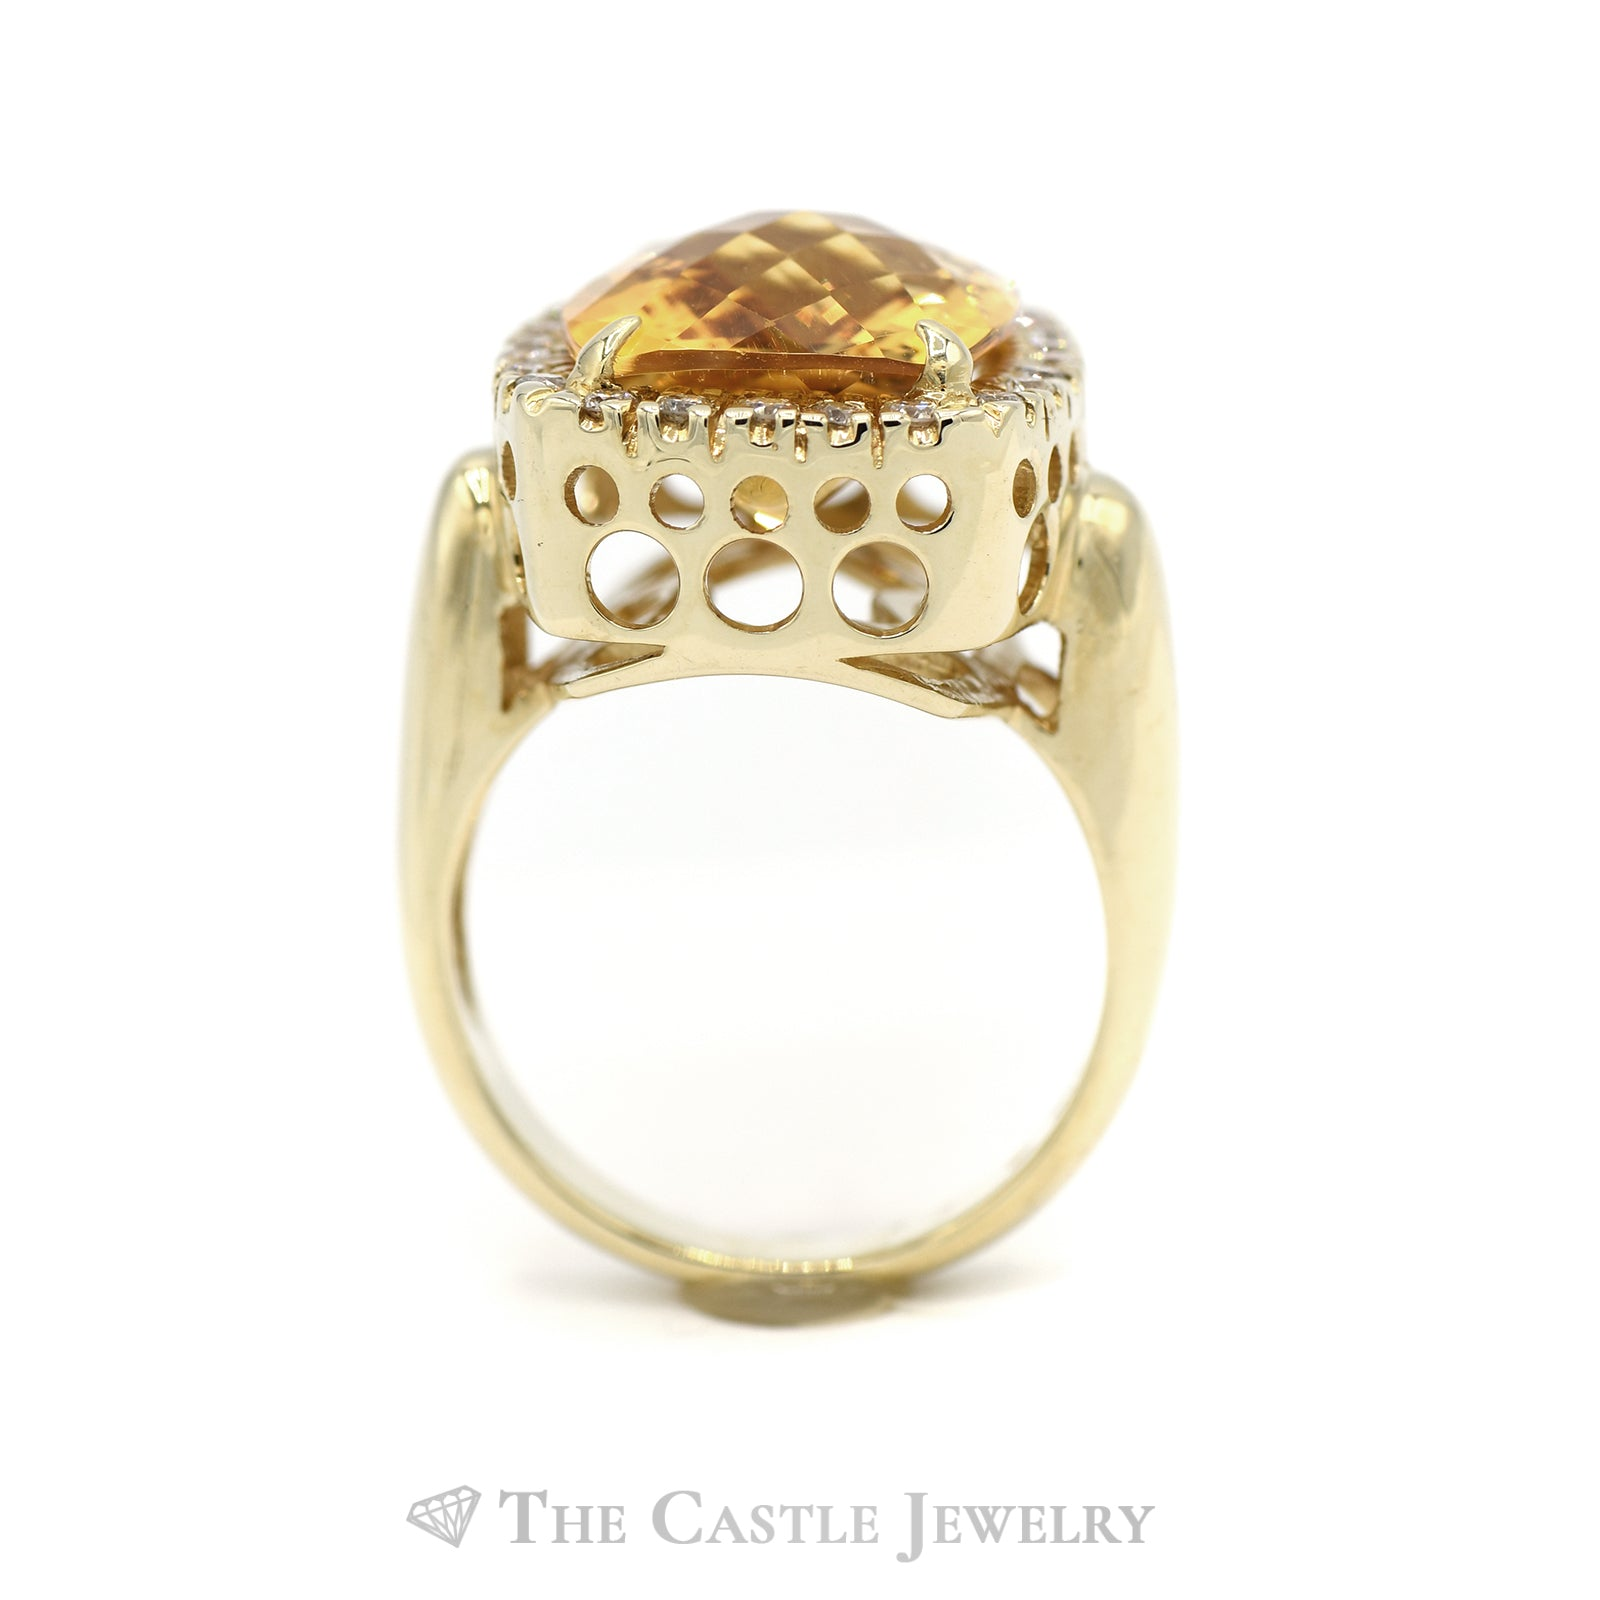 Fancy Citrine Ring with Diamond Bezel in 14K Yellow Gold-1